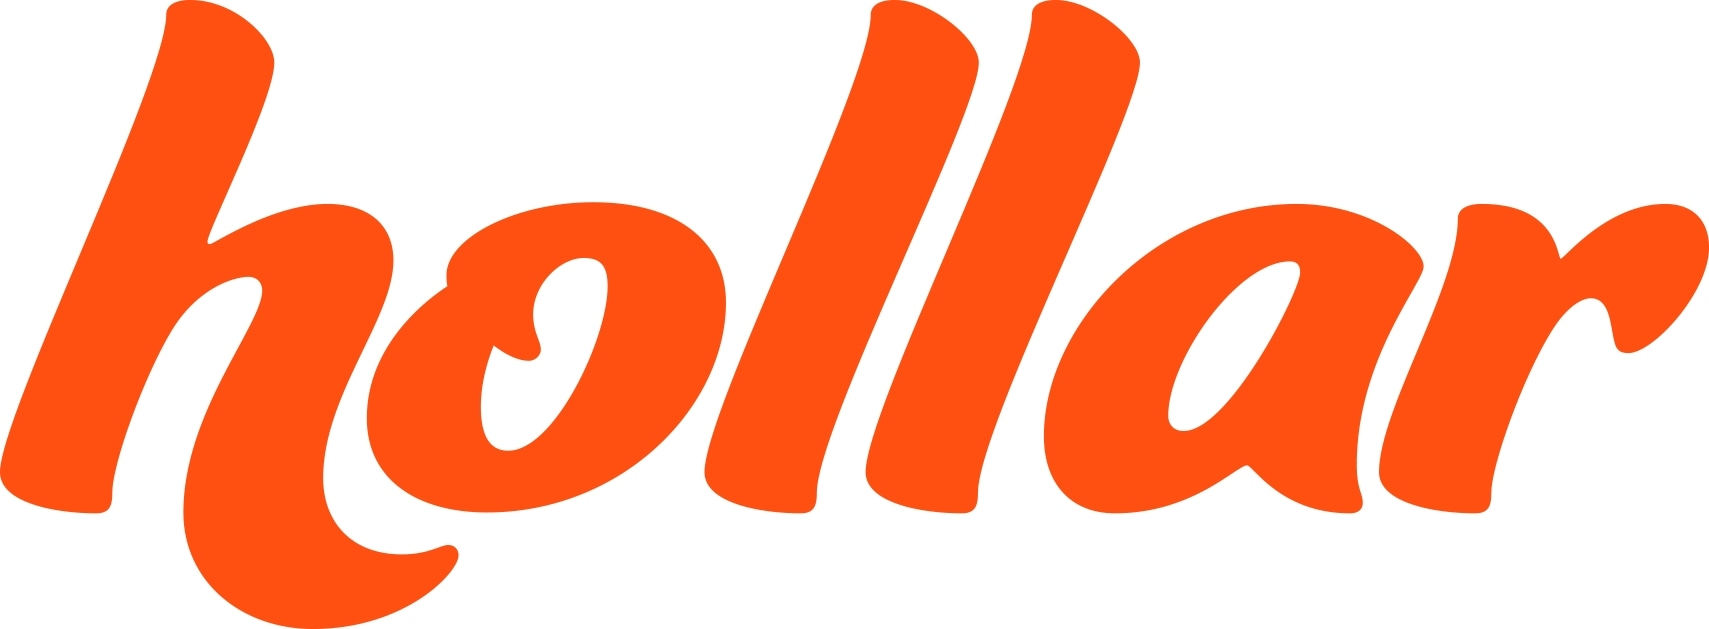 Hollar.com Coupons